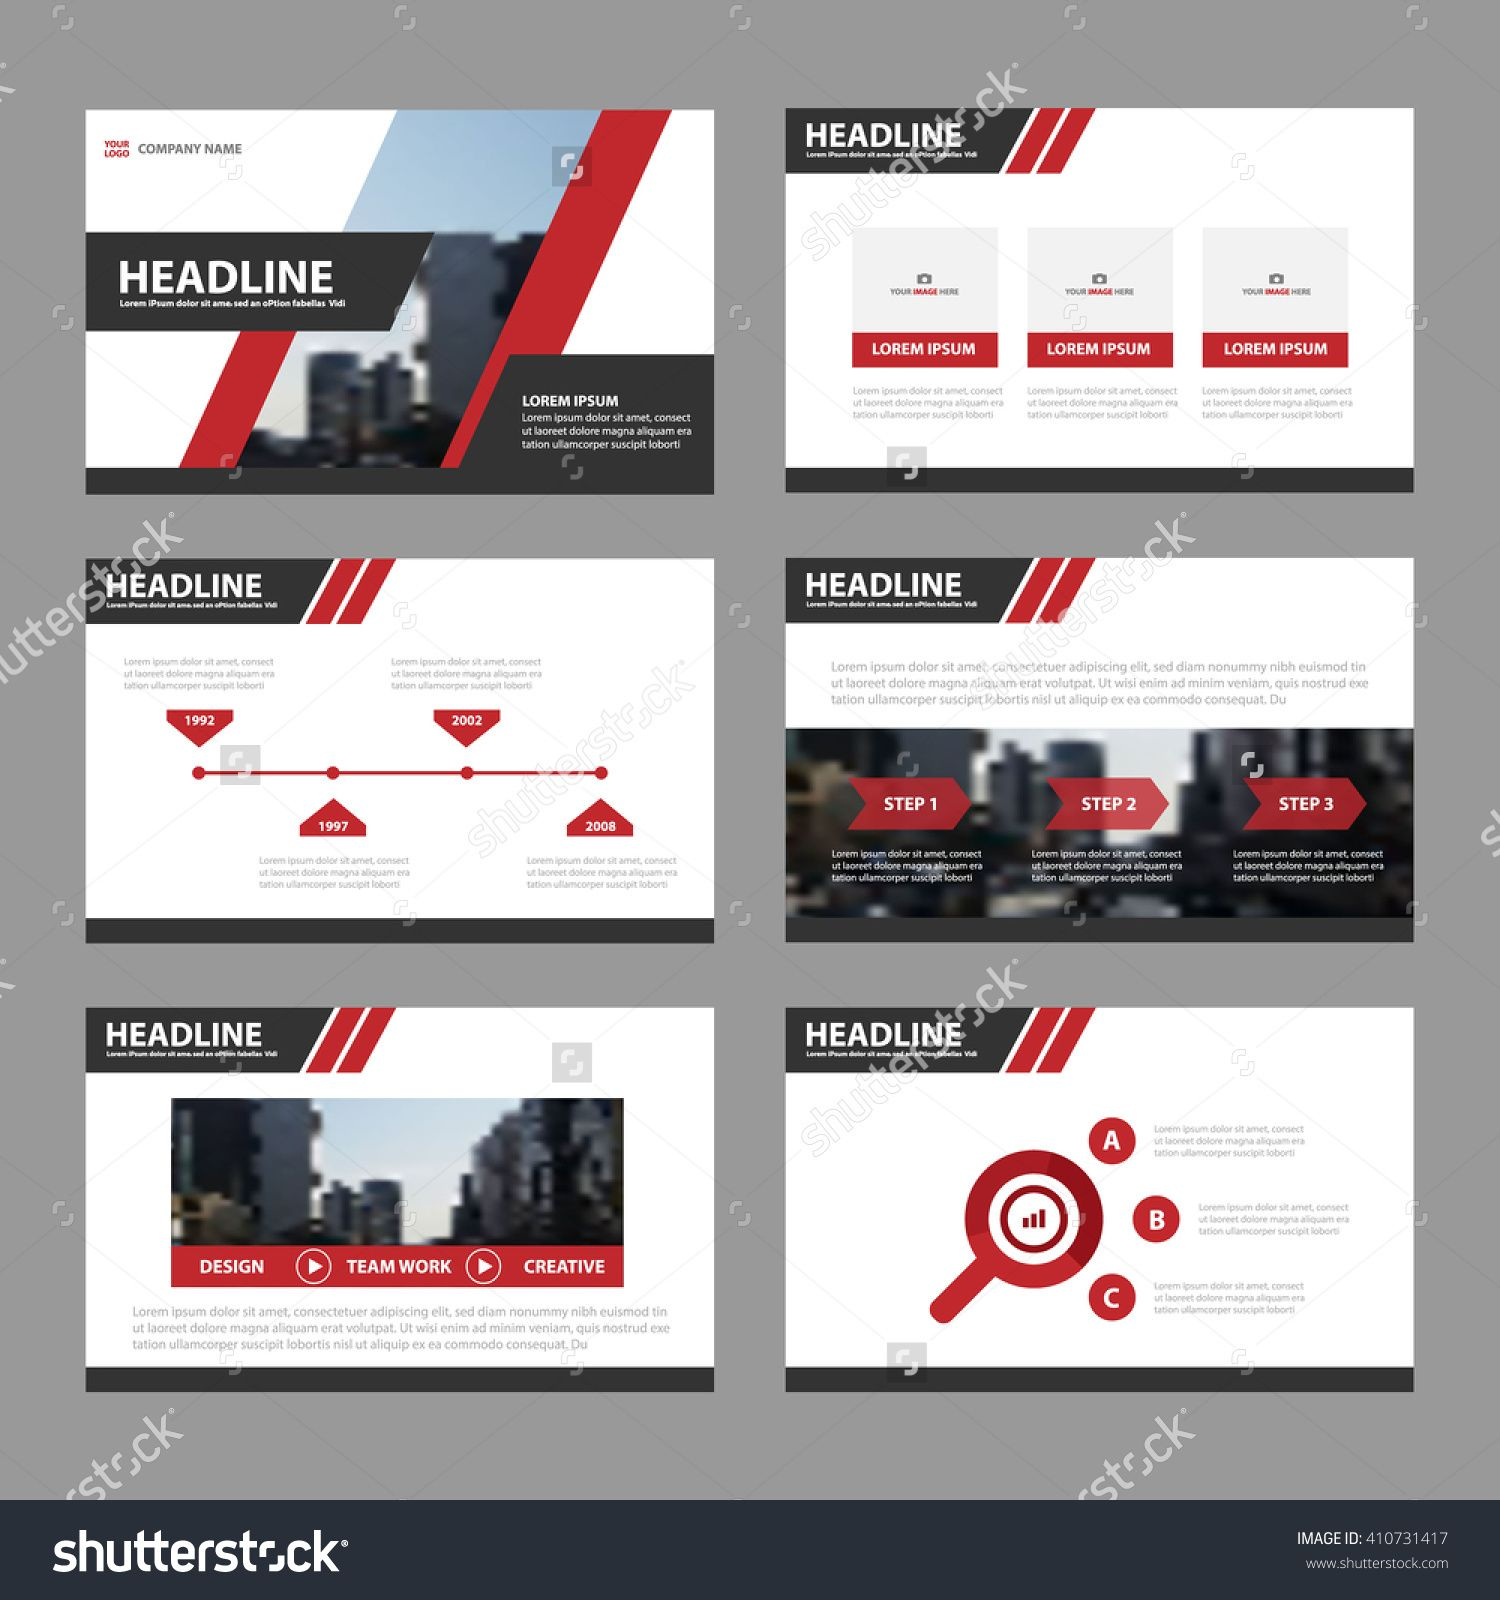 Red Black Presentation Templates Infographic Elements Flat Design ...